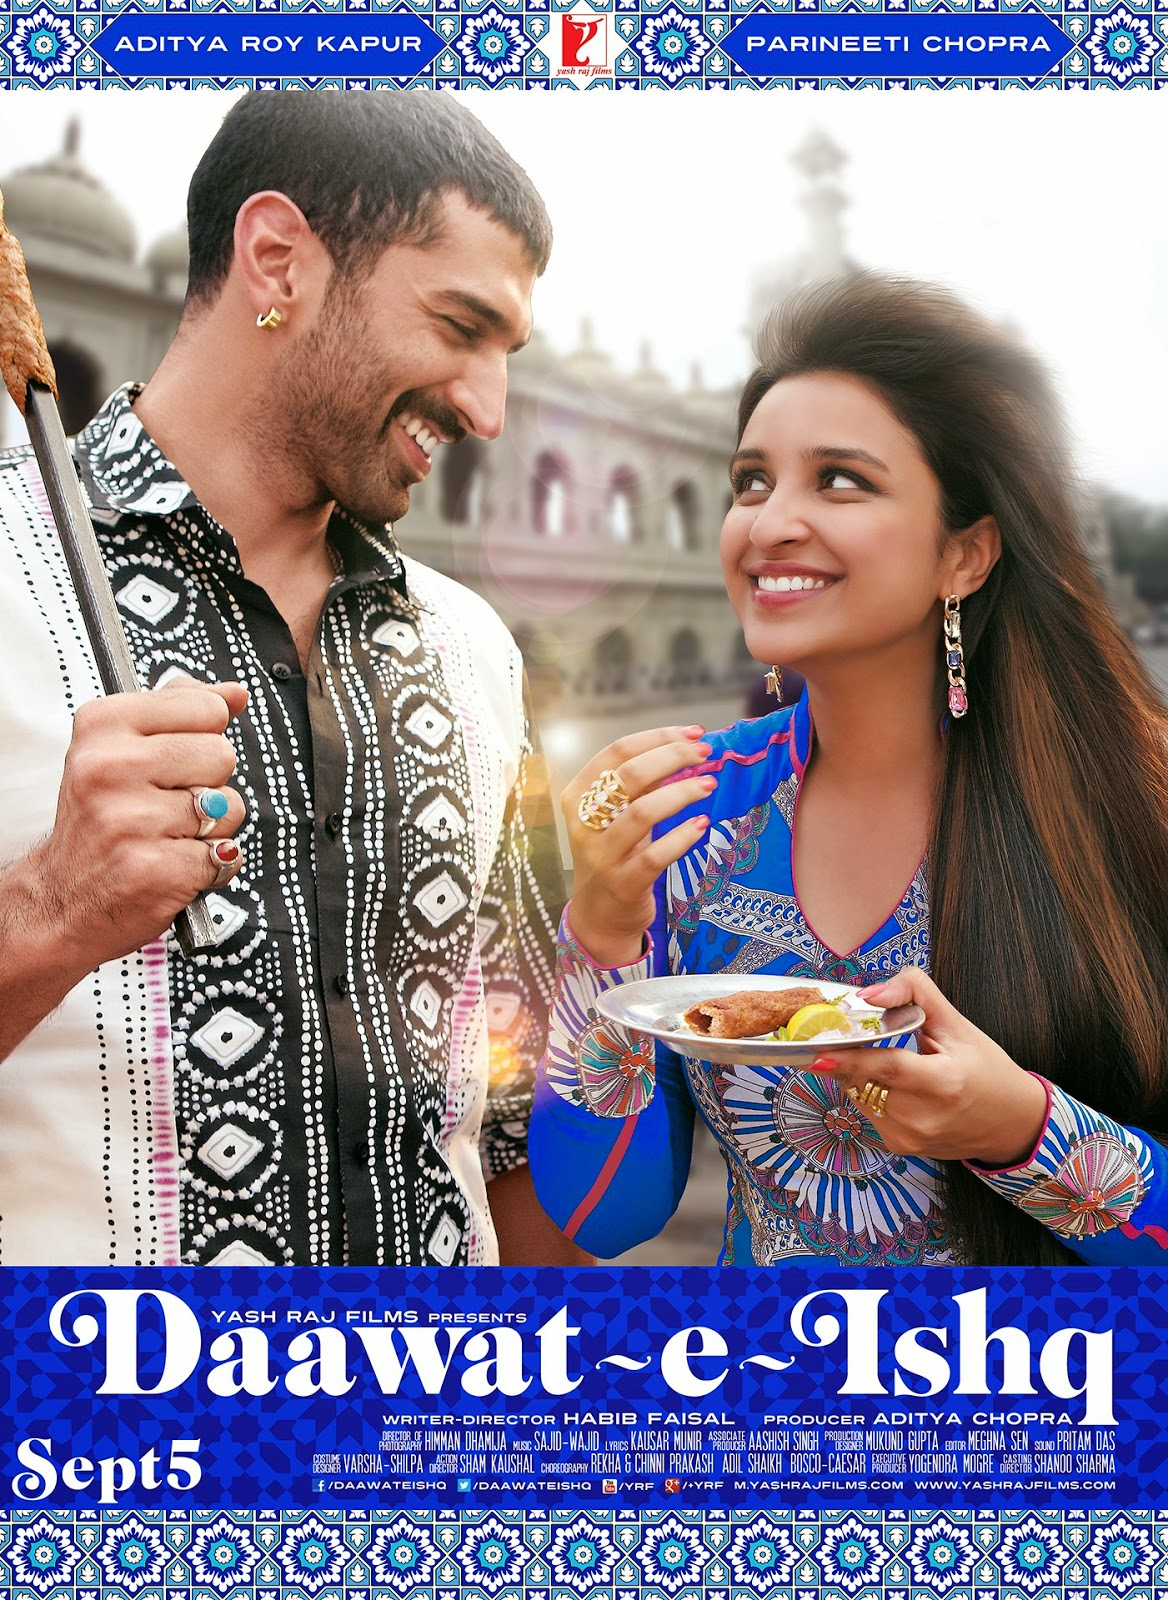 Daawat-e-Ishq 2014 Hindi Movie Watch Online